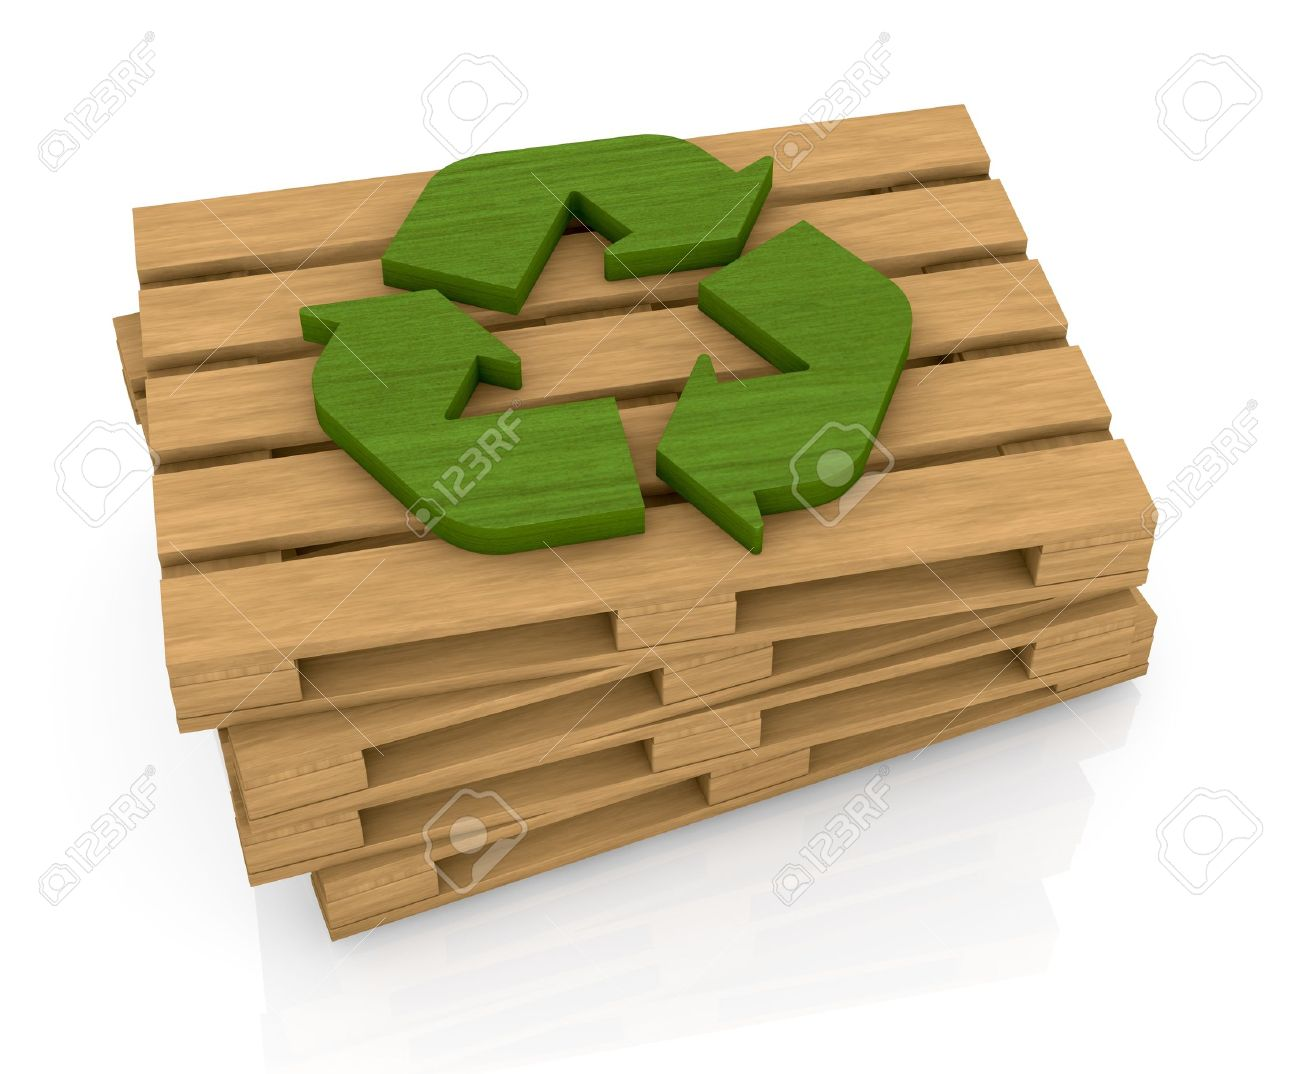 one stack of wooden pallets with a recycling symbol on top, a